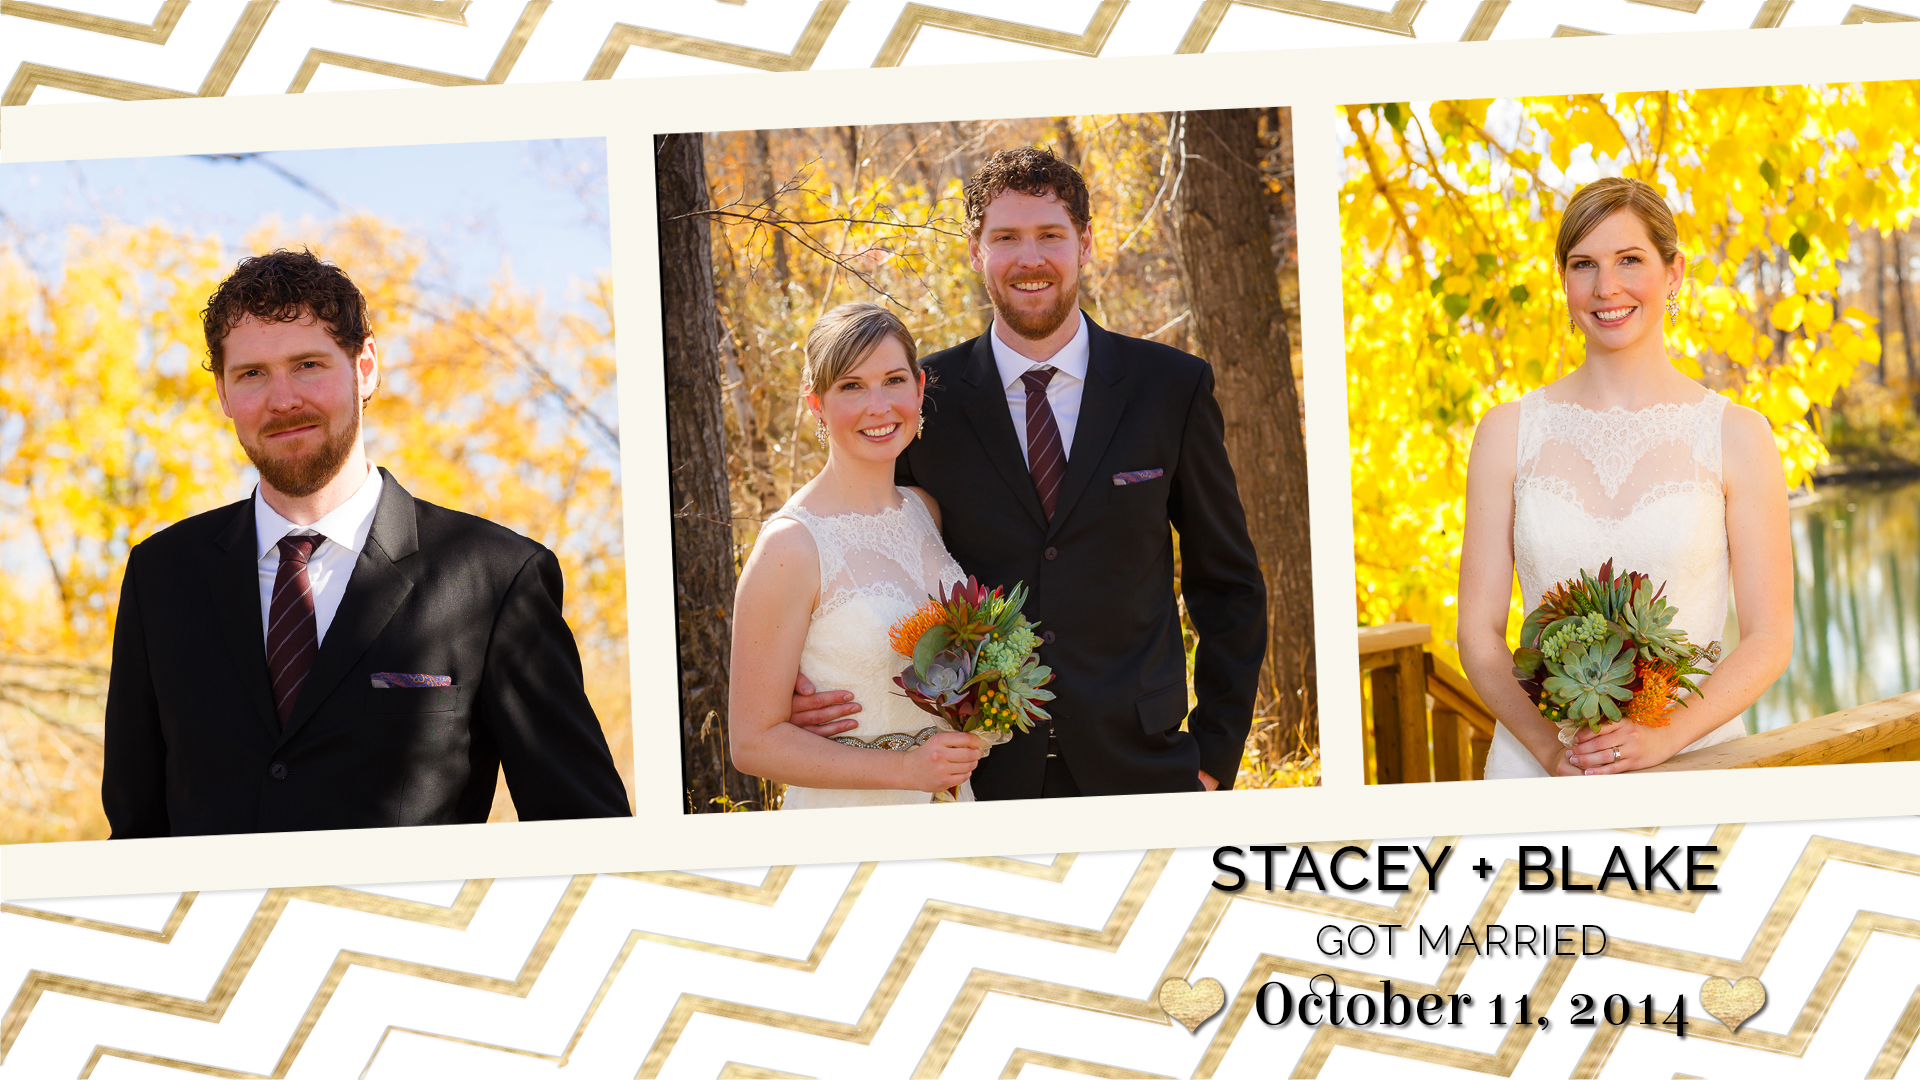 Wedding Photography for Blake & Stacey